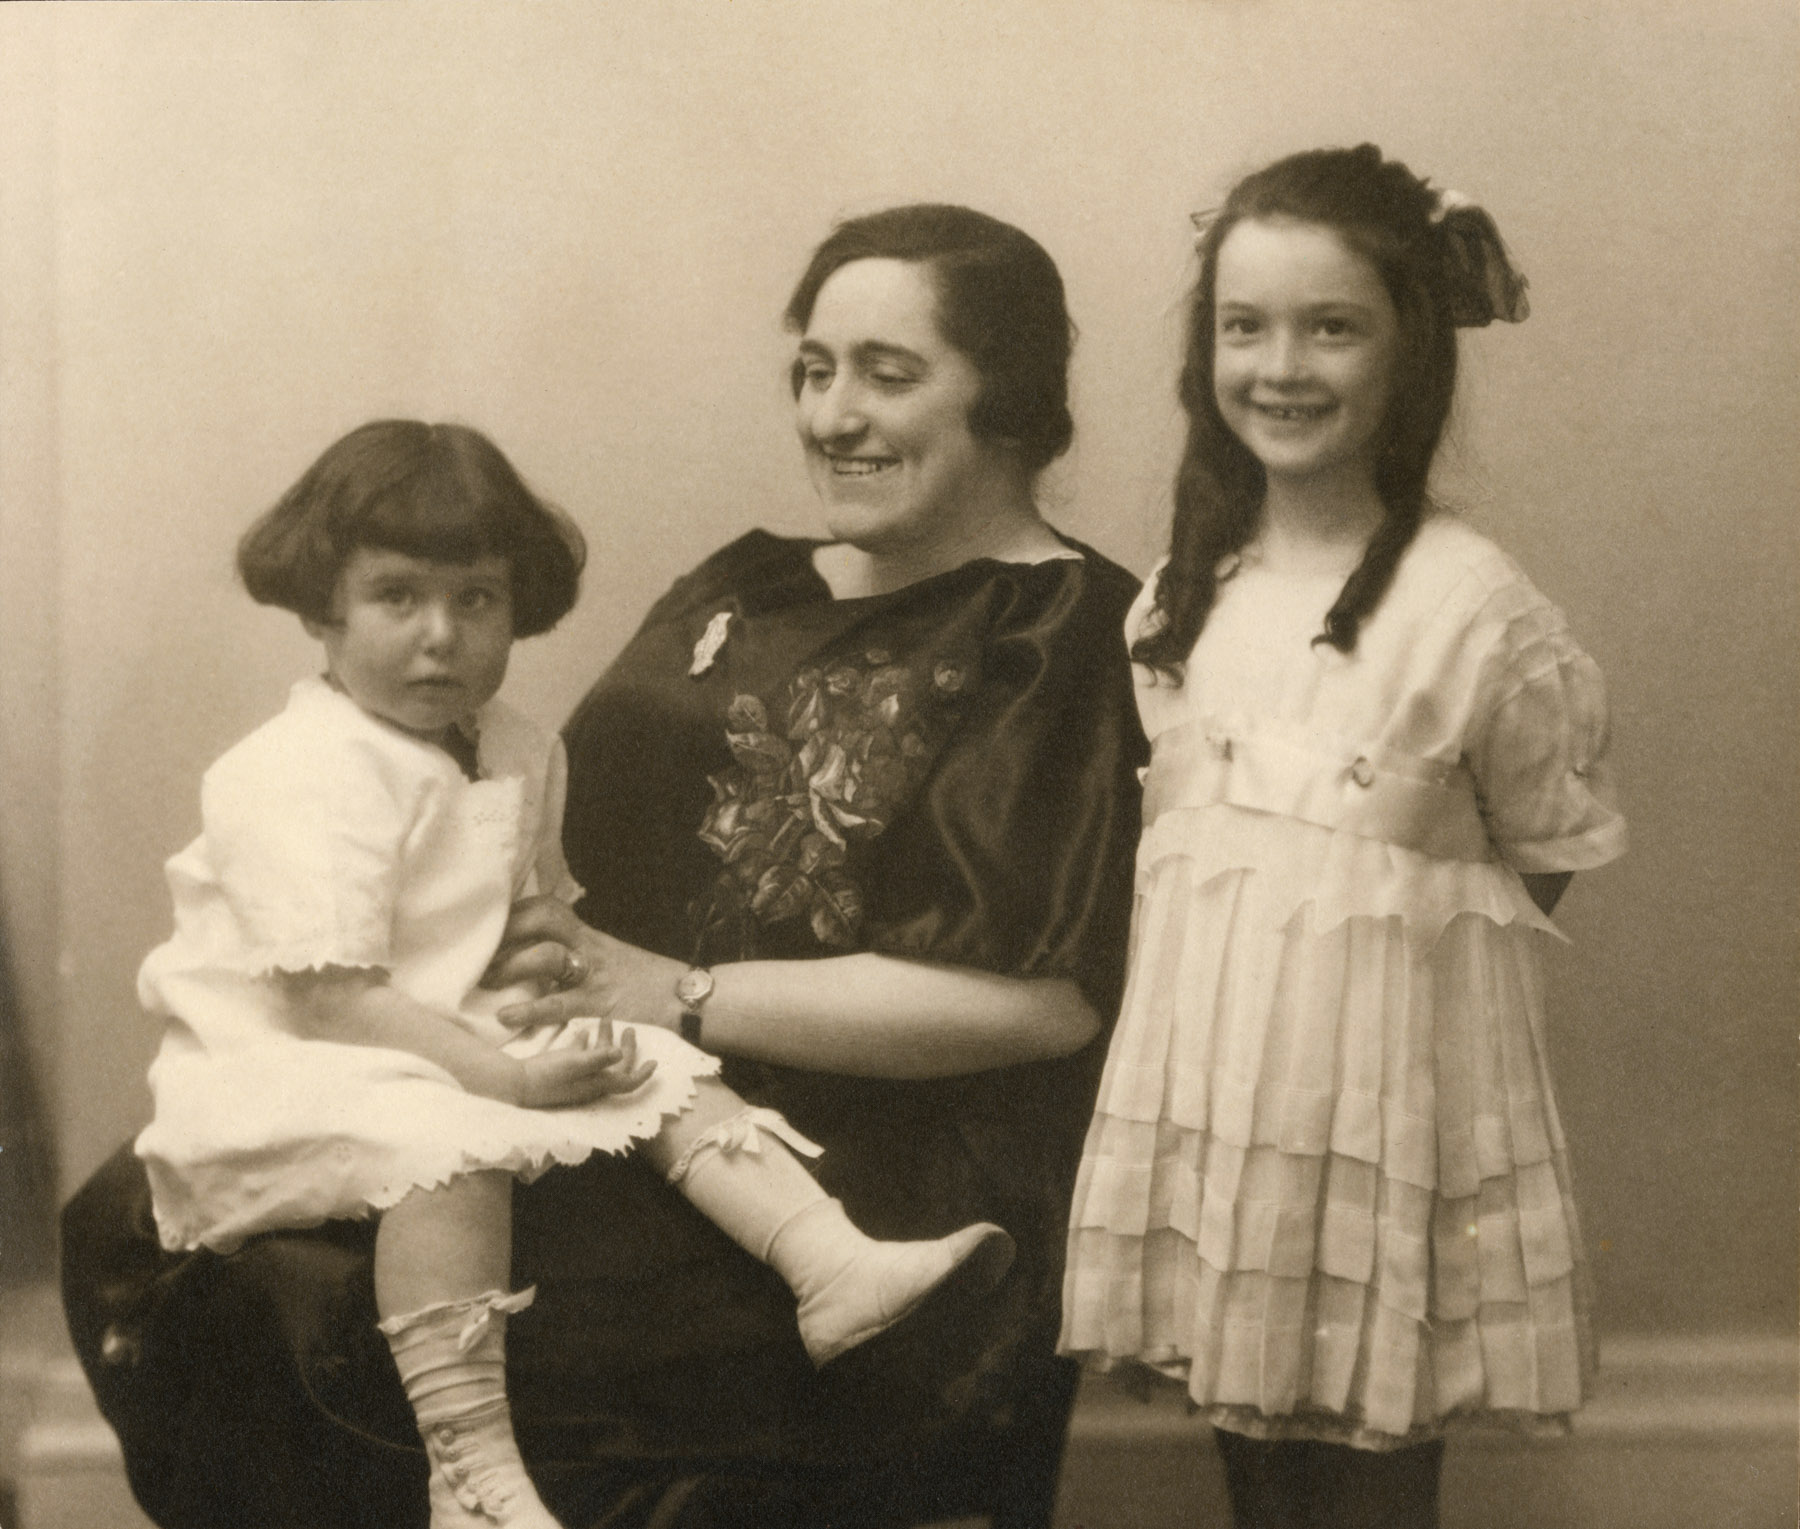 Ruth, Tina Fried, Bernice (c. 1919)